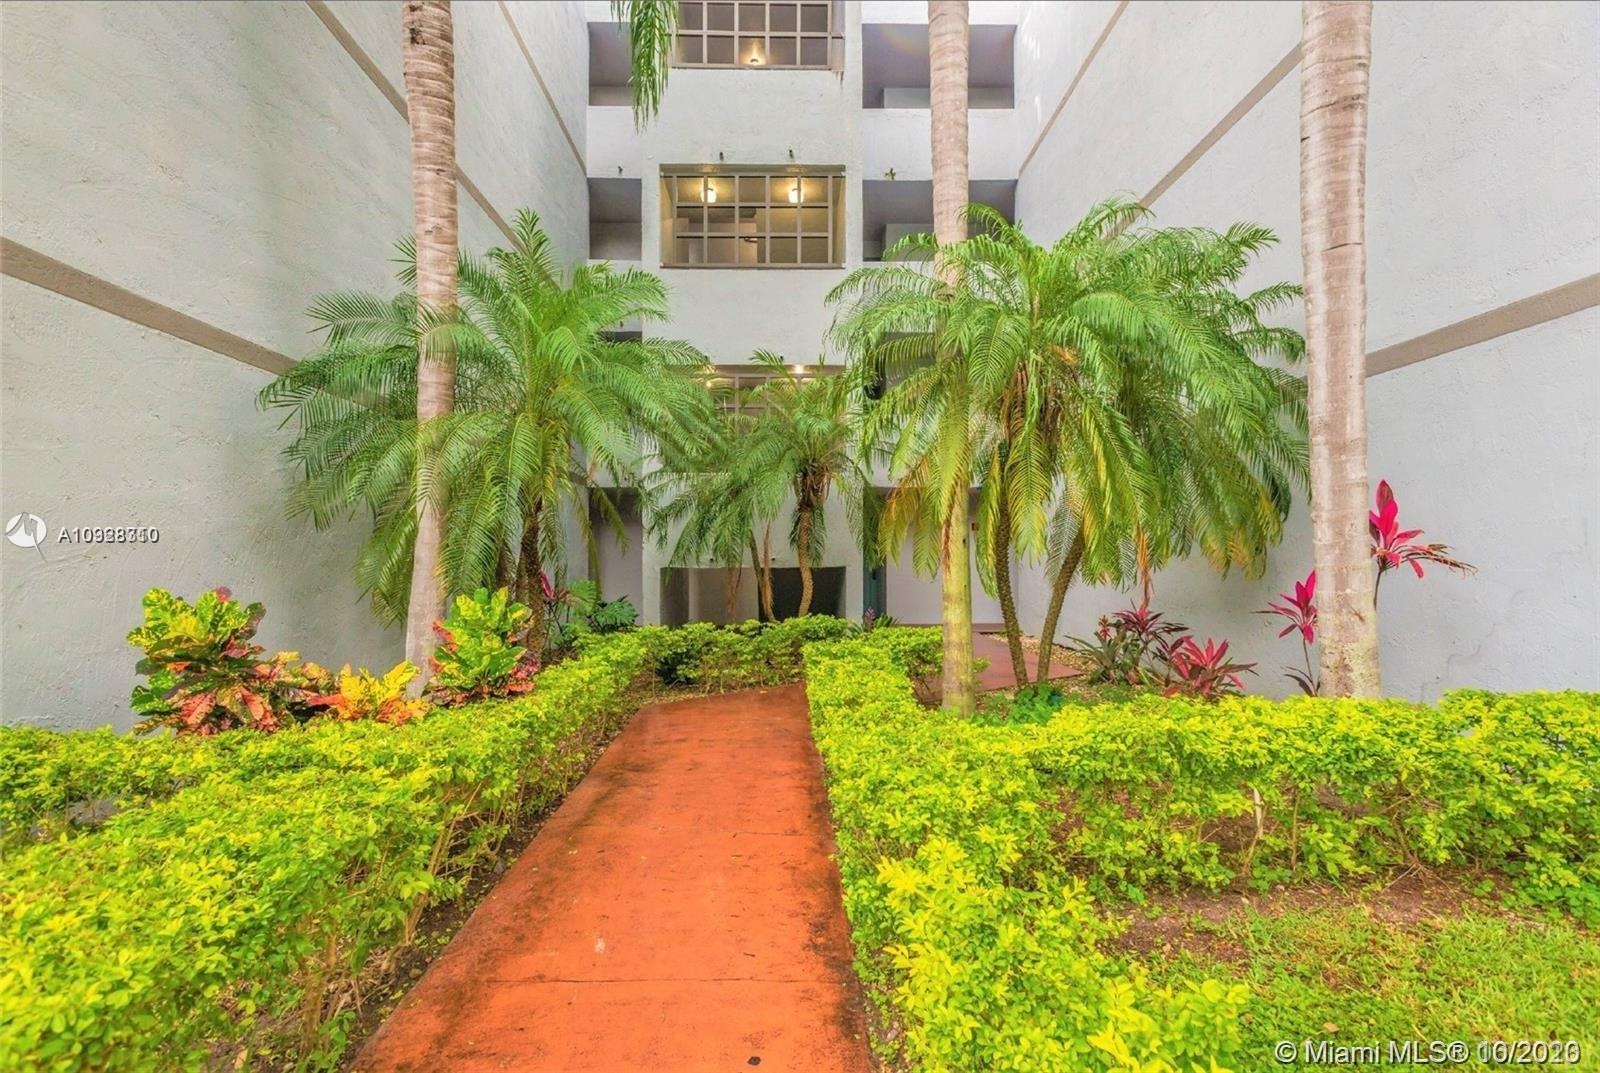 Plenty of light in this bright and spacious 2/2 condo in the heart of Kendall. Living areas have access to an extended balcony with a garden view. The Calusa Club community boasts 24 hr, patrolled security, a large pool, and a tennis court. Condo is tiled throughout, complete with a washer/dryer in the unit. Amazing location near top-rated schools, Baptist medical facilities, Nova University, restaurants, shopping, the FL Turnpike and more.   Your family home in Kendall awaits